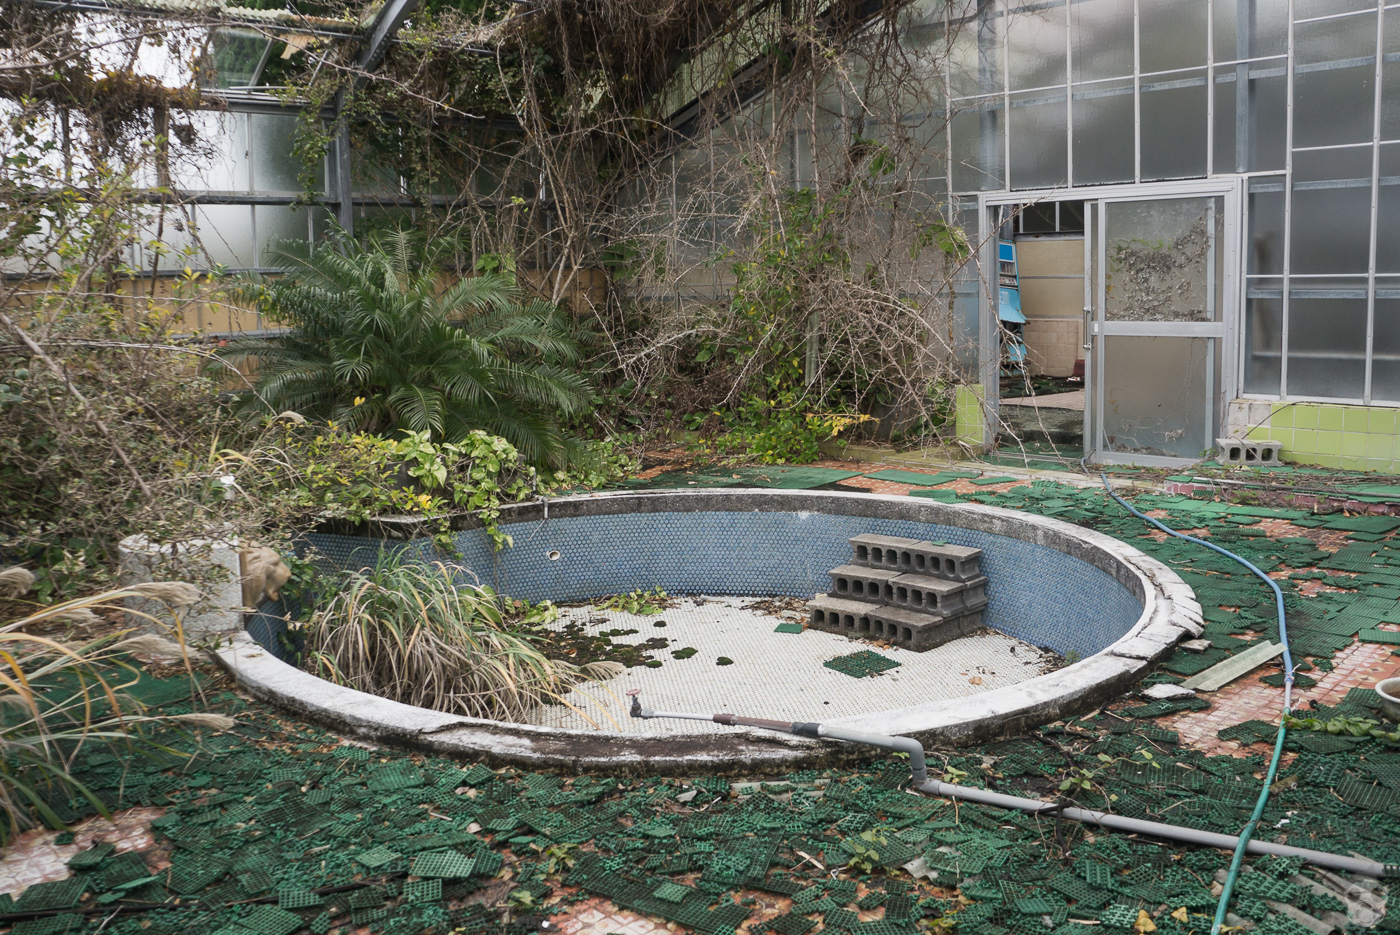 Abandoned Hachijo Hot Springs Hotel 八丈温泉ホテル 廃墟